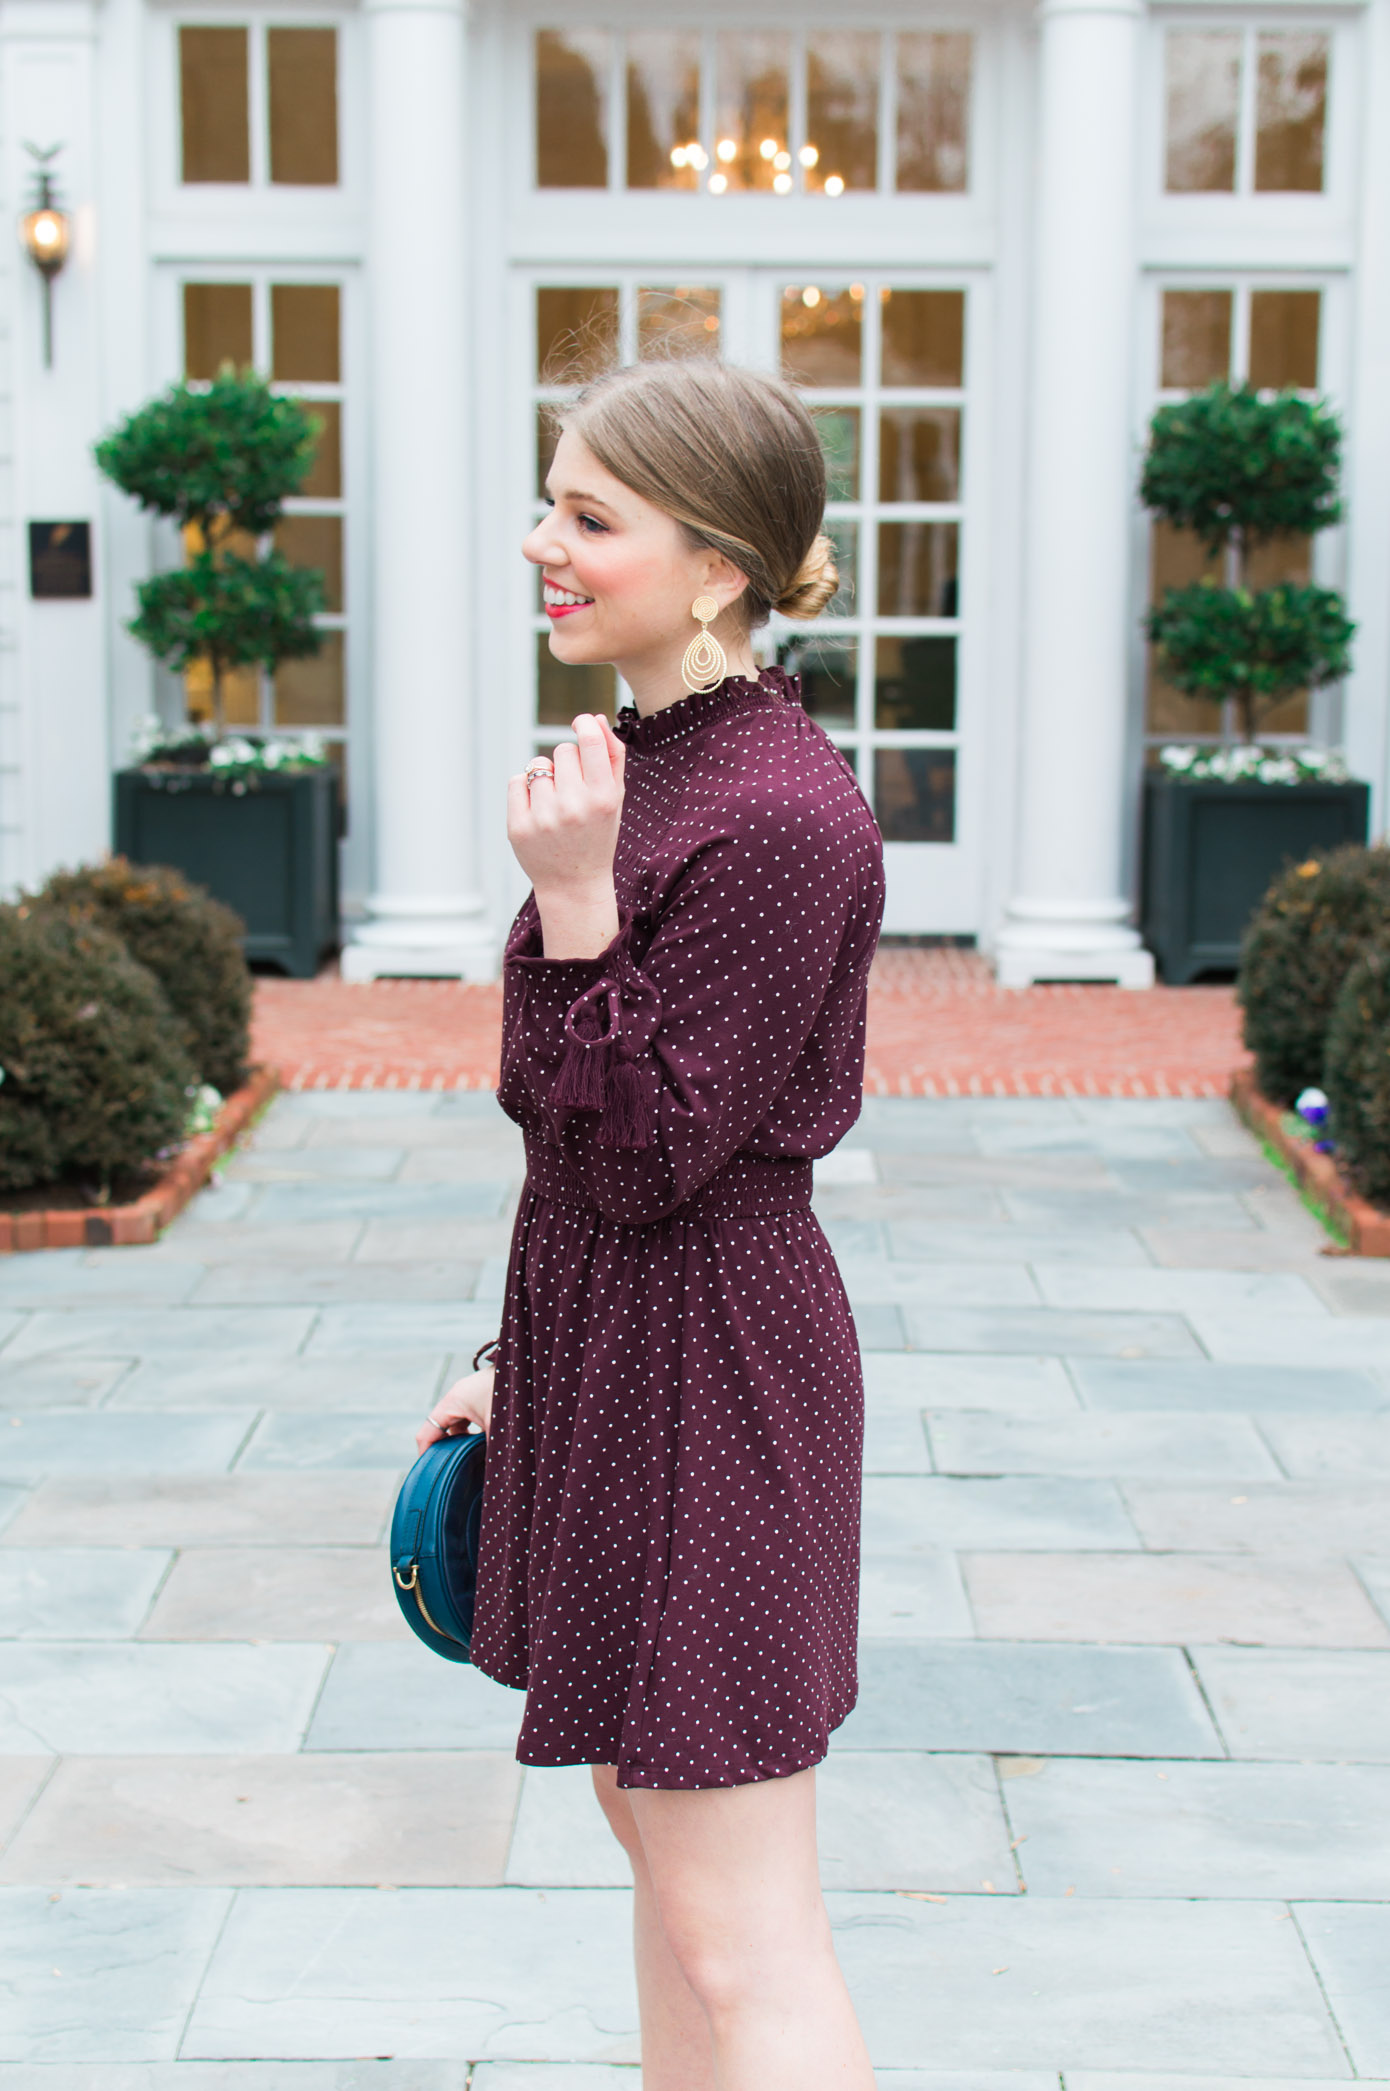 Polka Dot Mini Dress | Chic Winter Date Night Look | Louella Reese Life & Style Blog